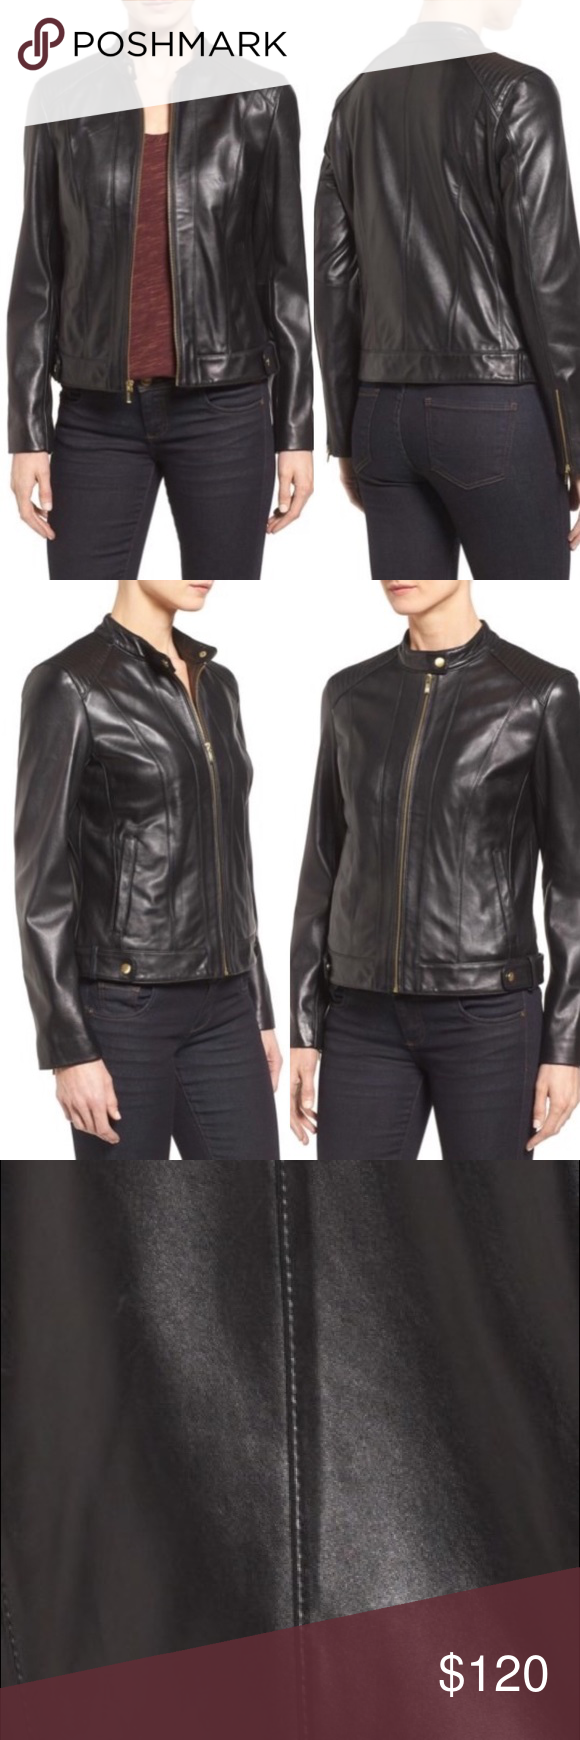 73563683e5155 Cole Haan Plus Size Leather Moto Jacket Cole Haan introduces an It-girl  staple for